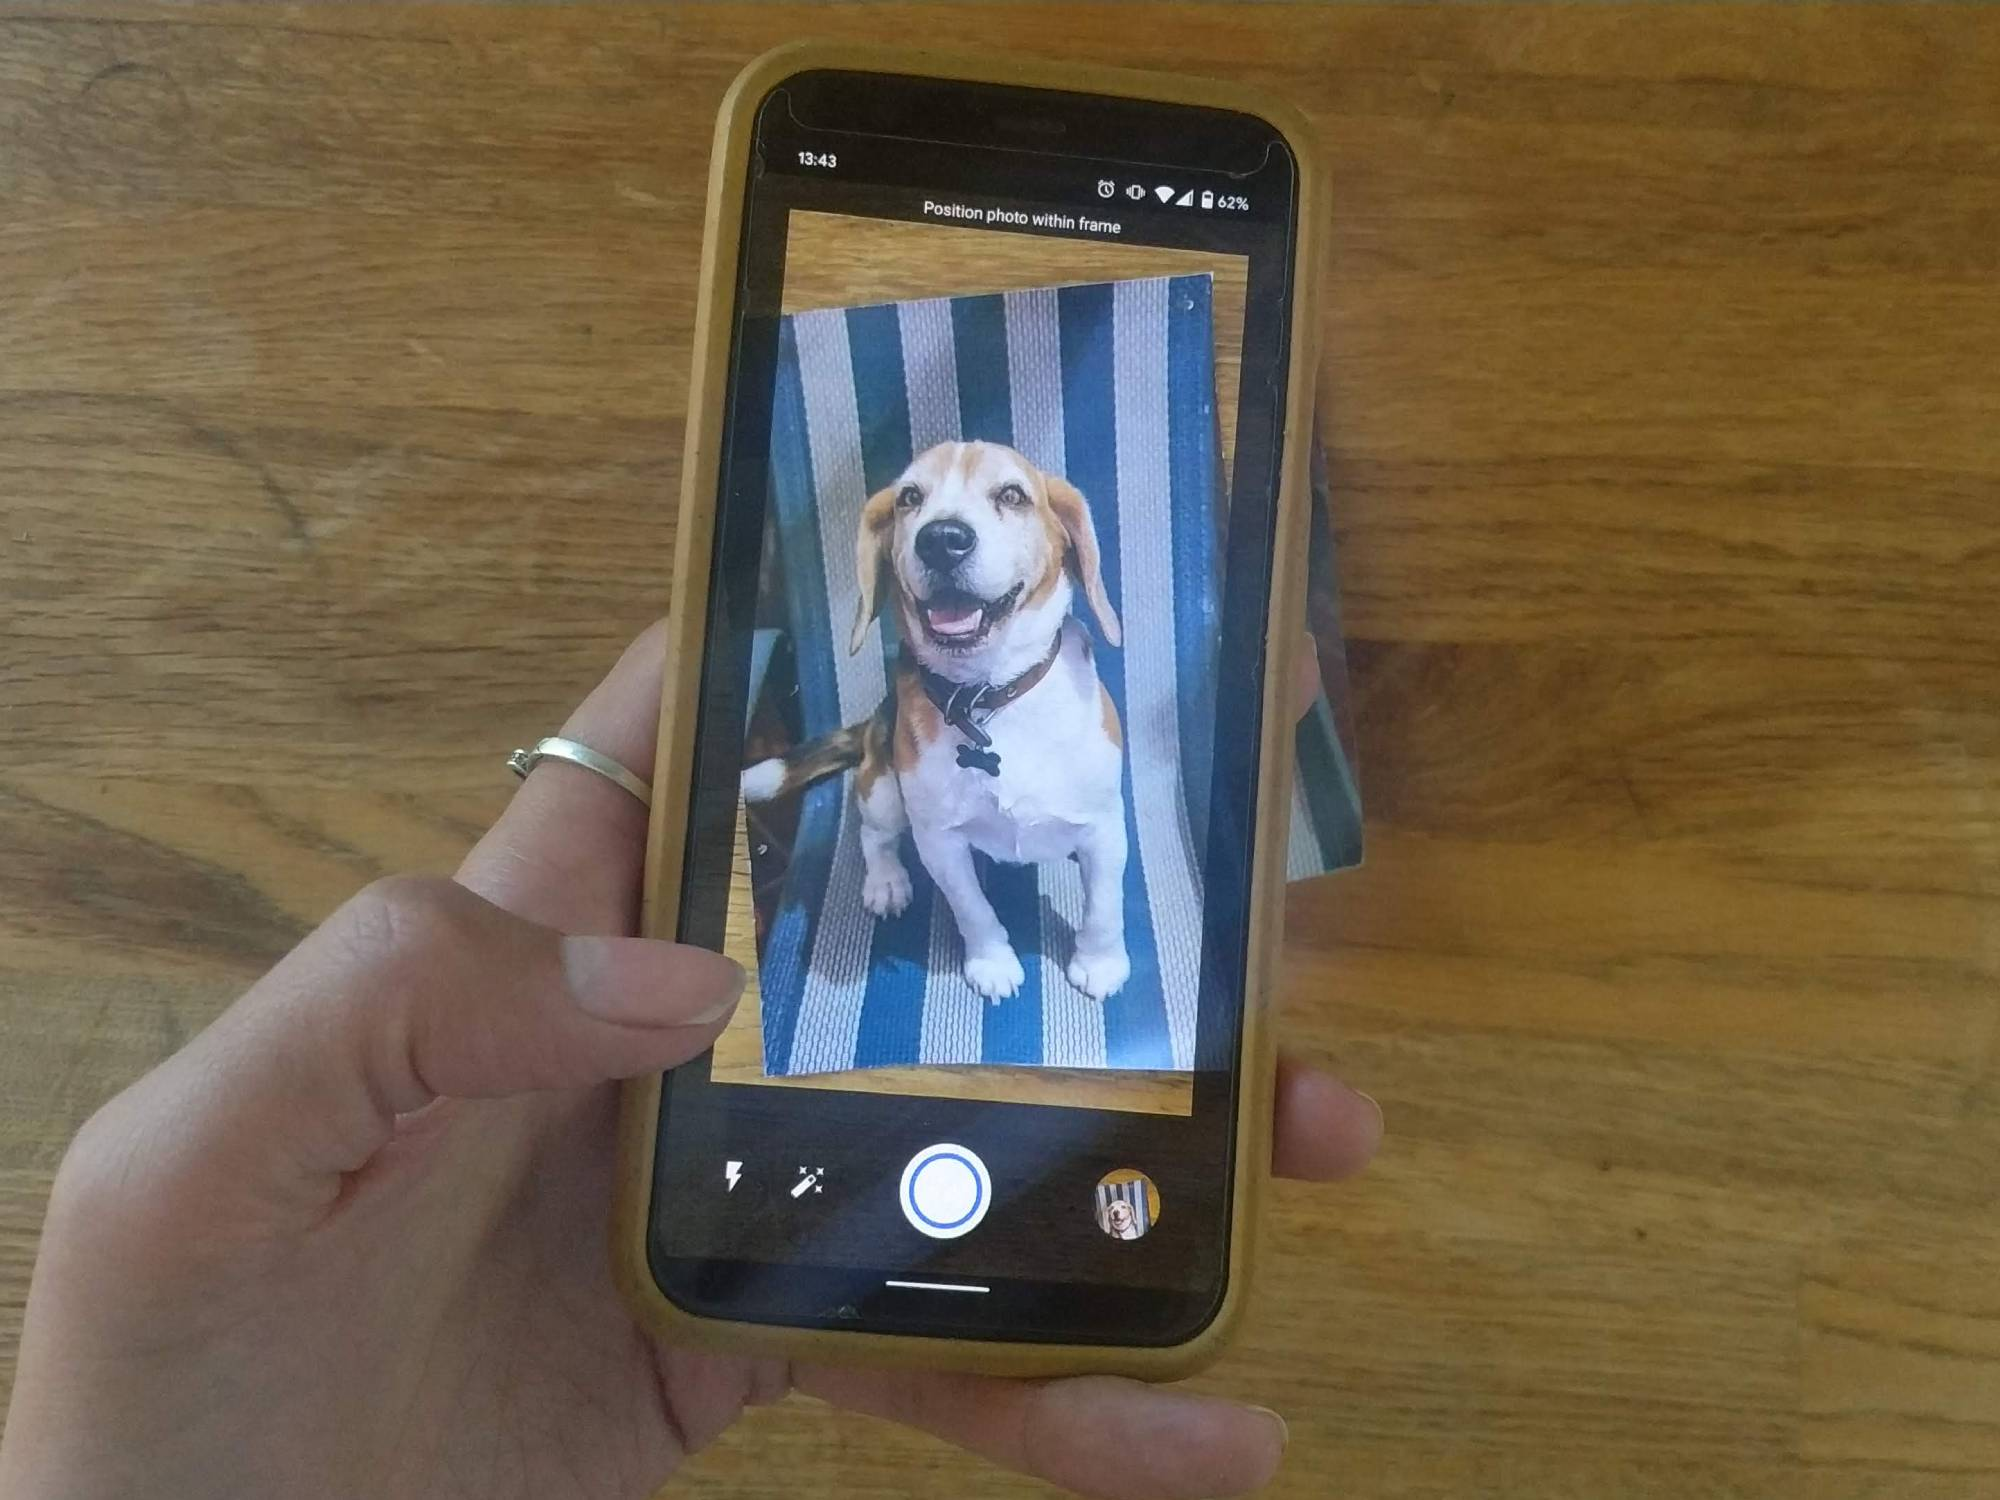 Smartphone using the app Google PhotoScan to scan a printed photo